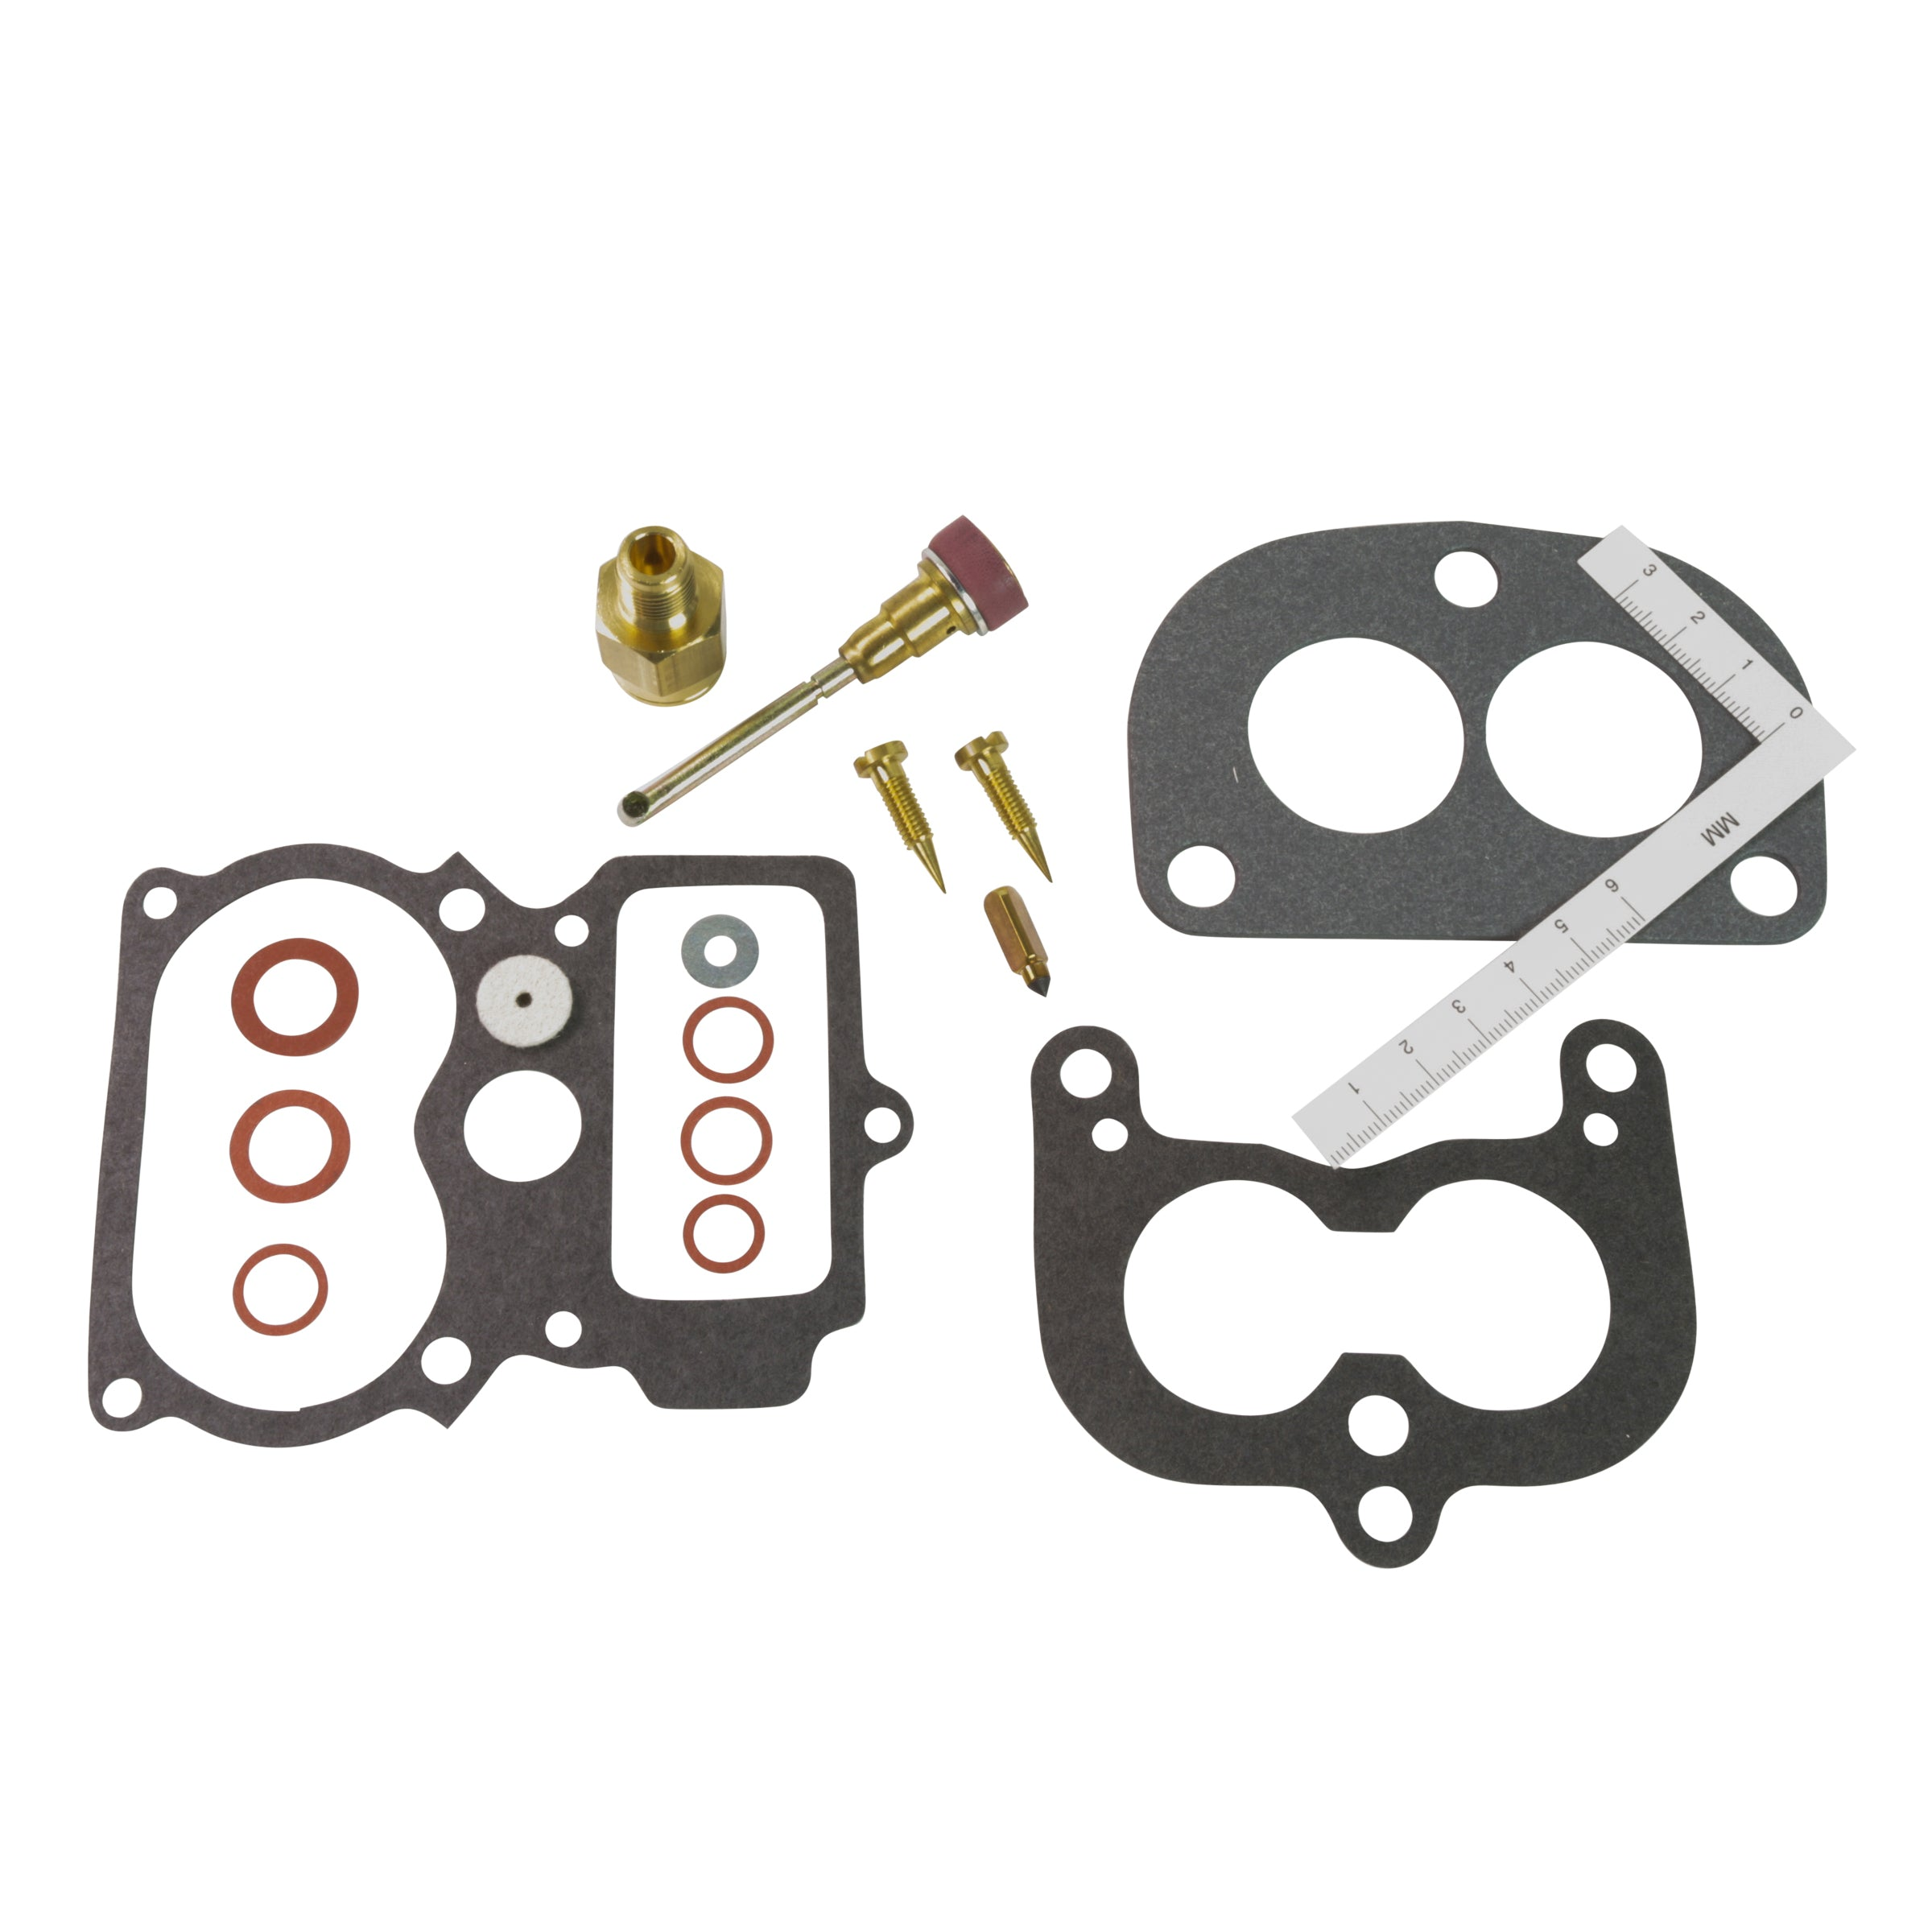 Carburetor Rebuild Kit (Stromberg) • 1933-38 Ford